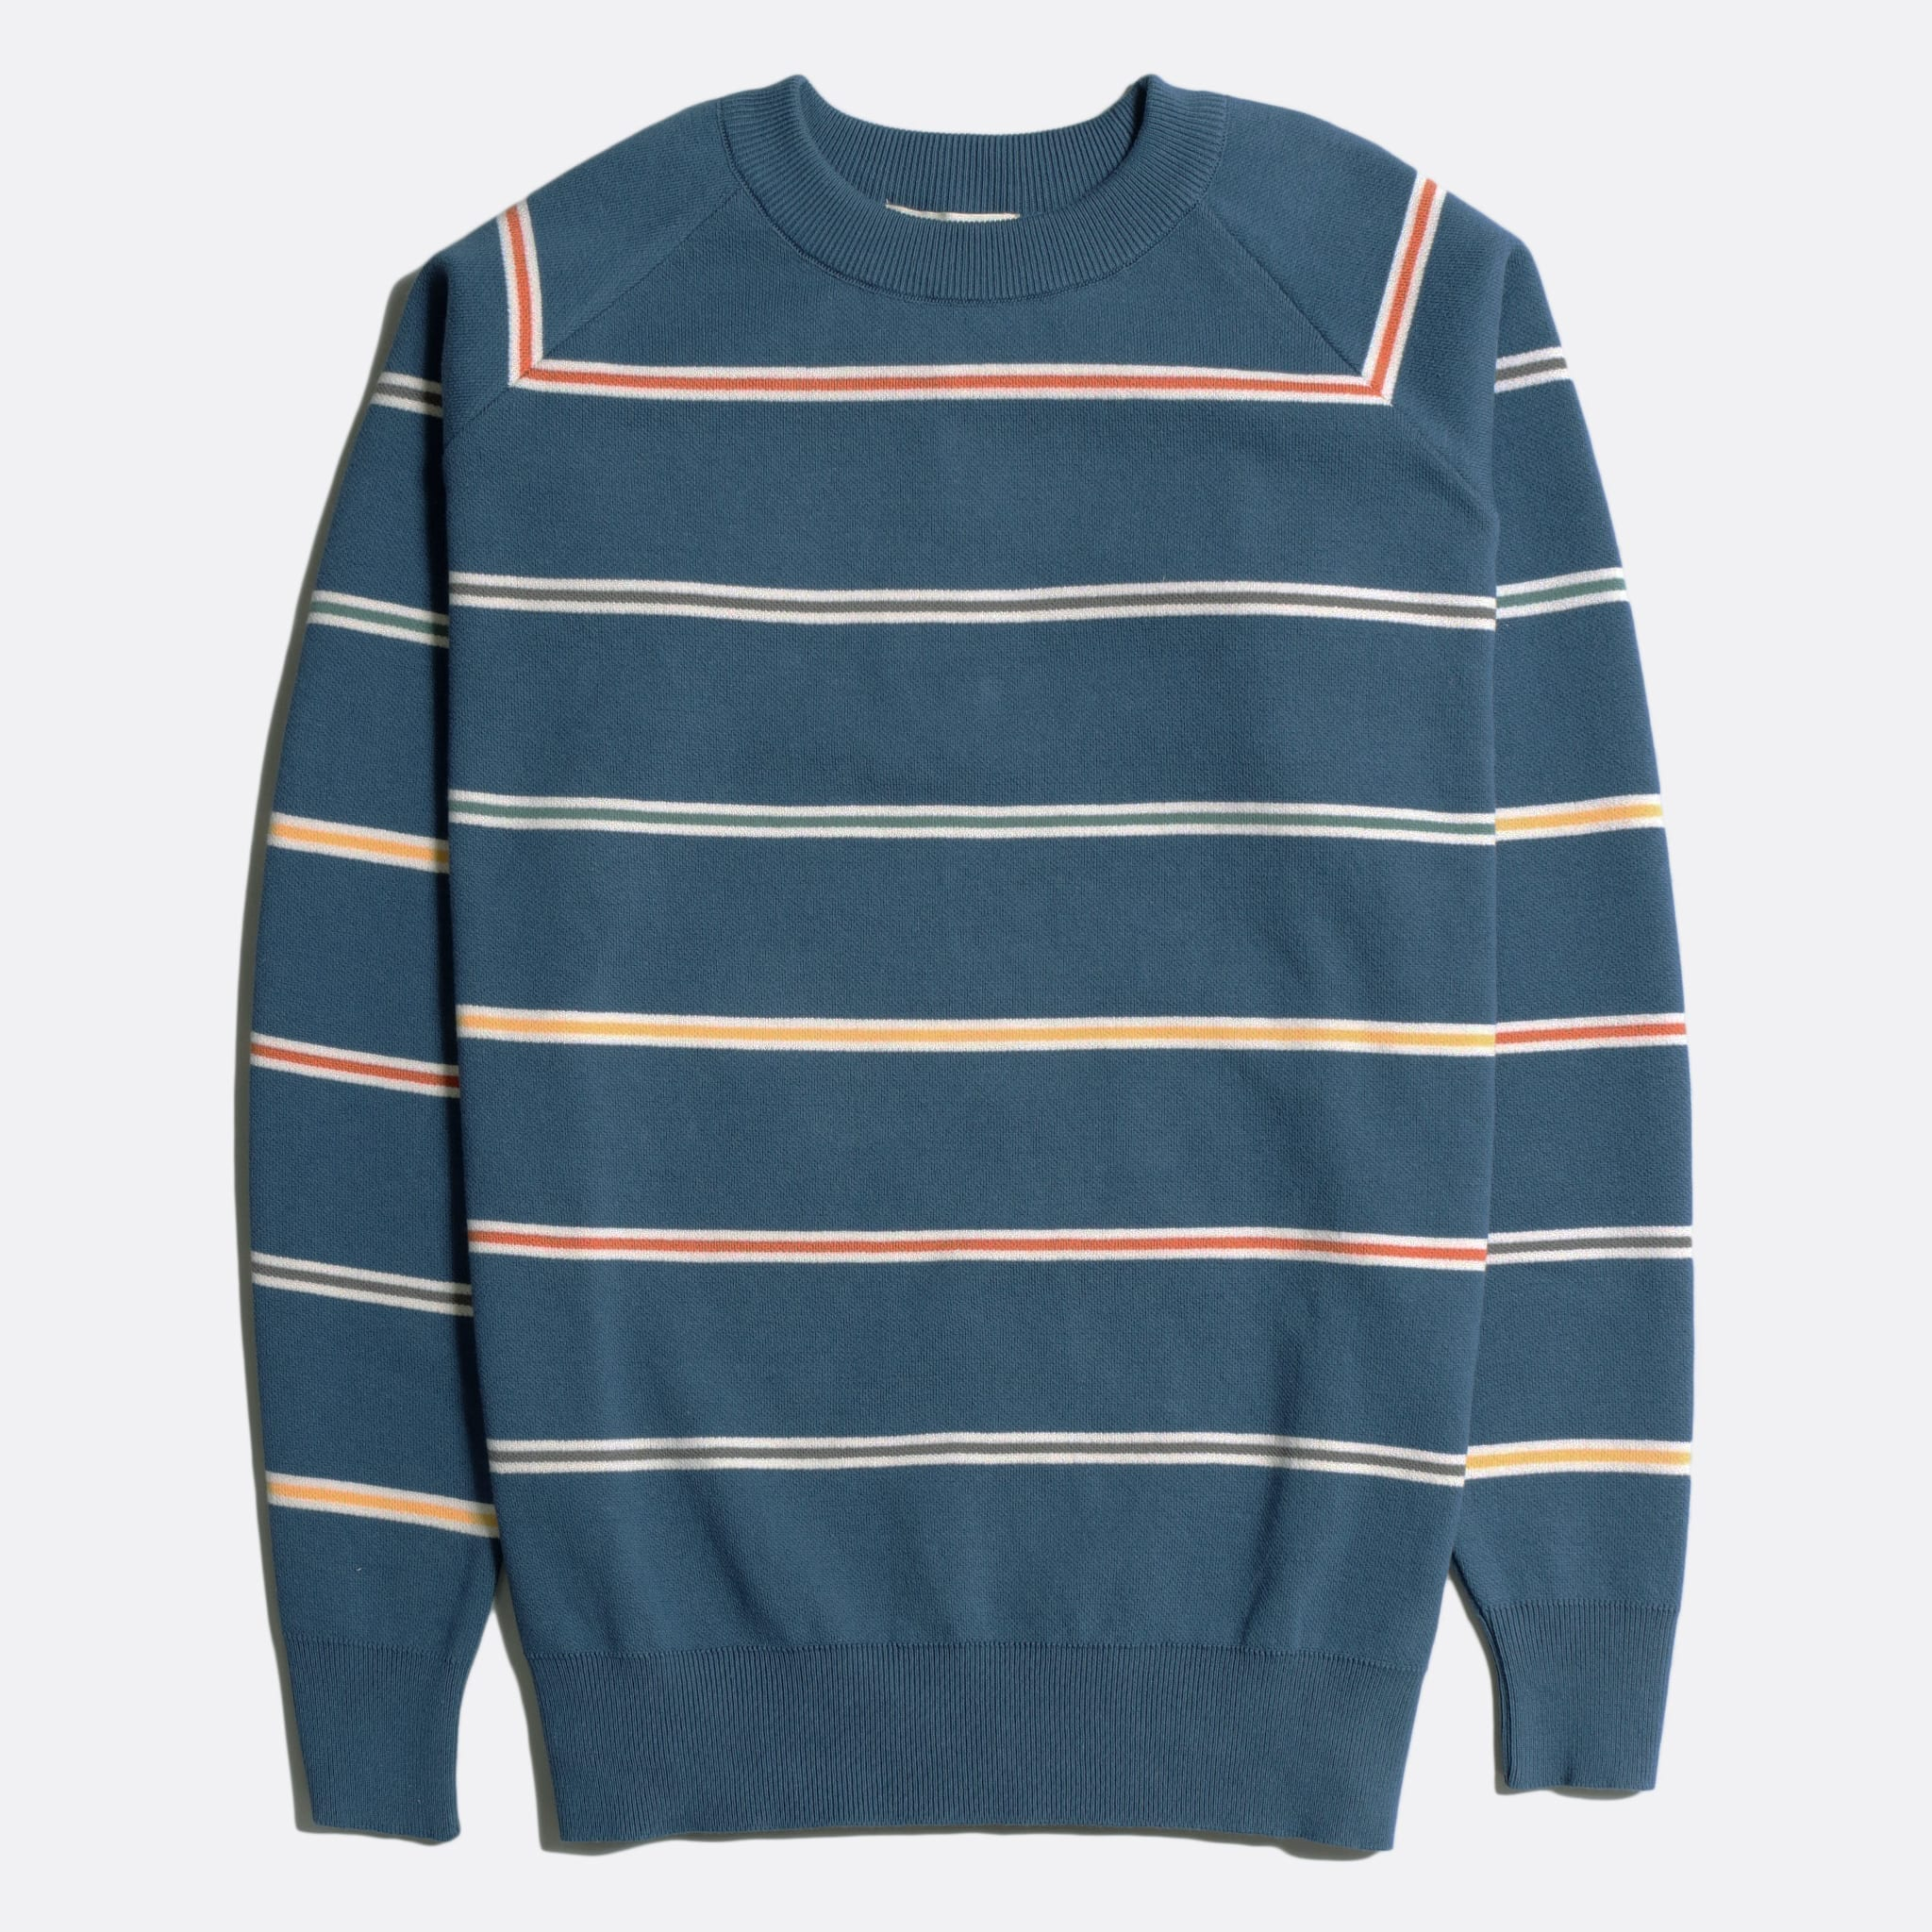 Far Afield Carrol Raglan Knit a Ensign Blue Stripes Organic Cotton Fabric Casual Basics